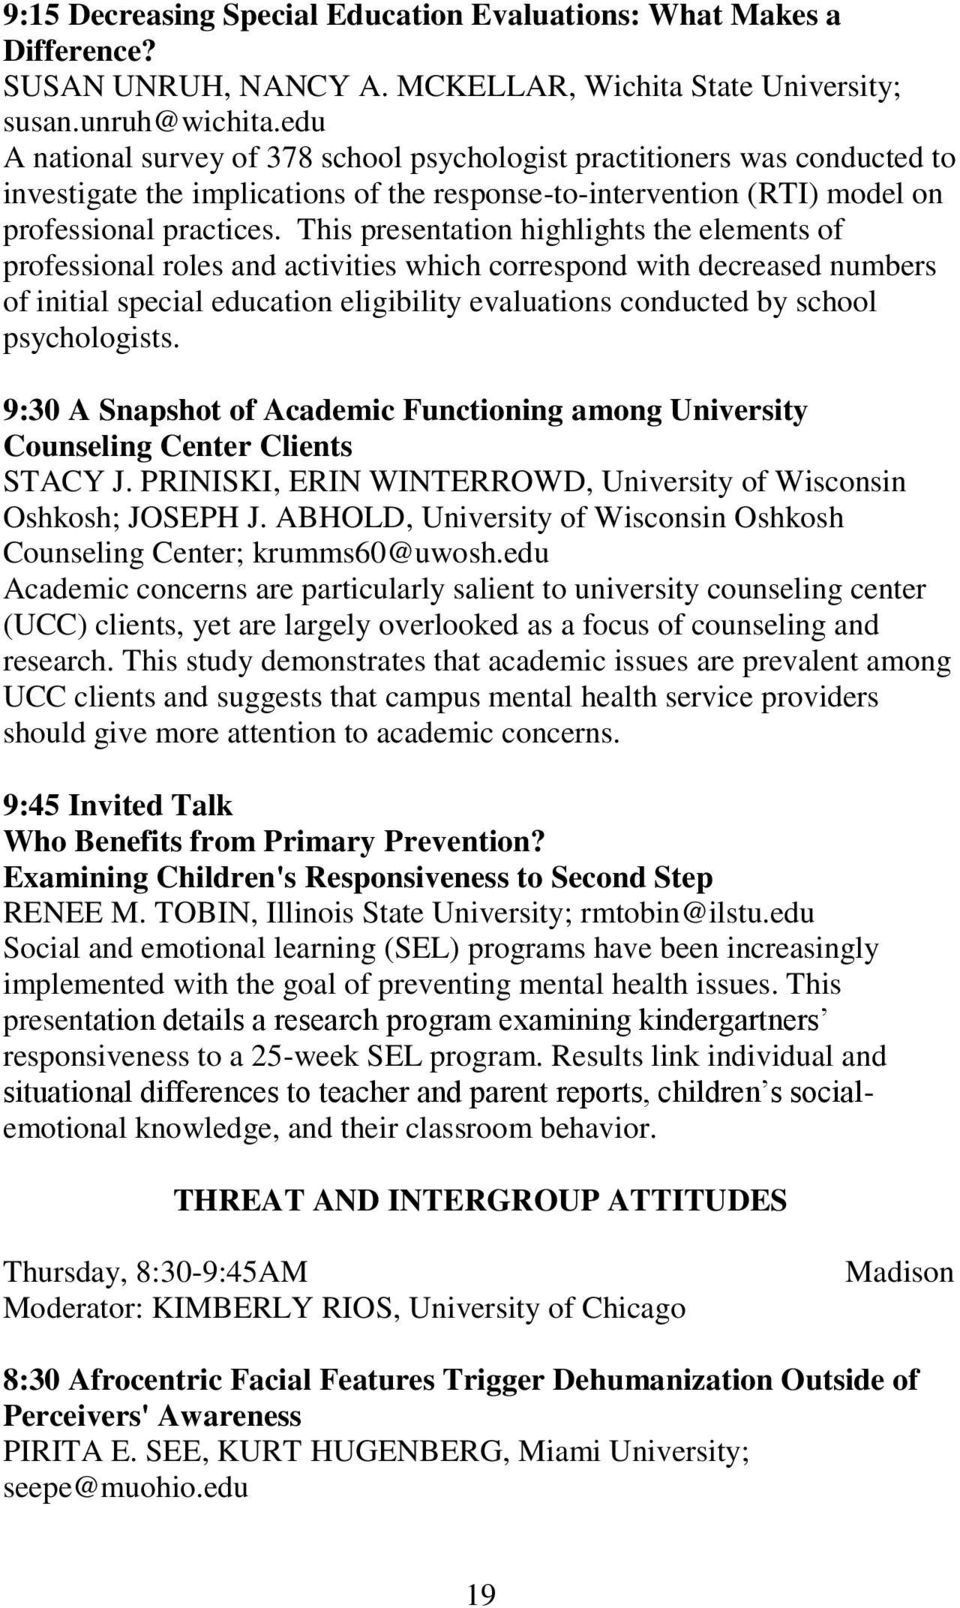 PROGRAM EIGHTY-FIFTH ANNUAL MEETING MIDWESTERN PSYCHOLOGICAL ...